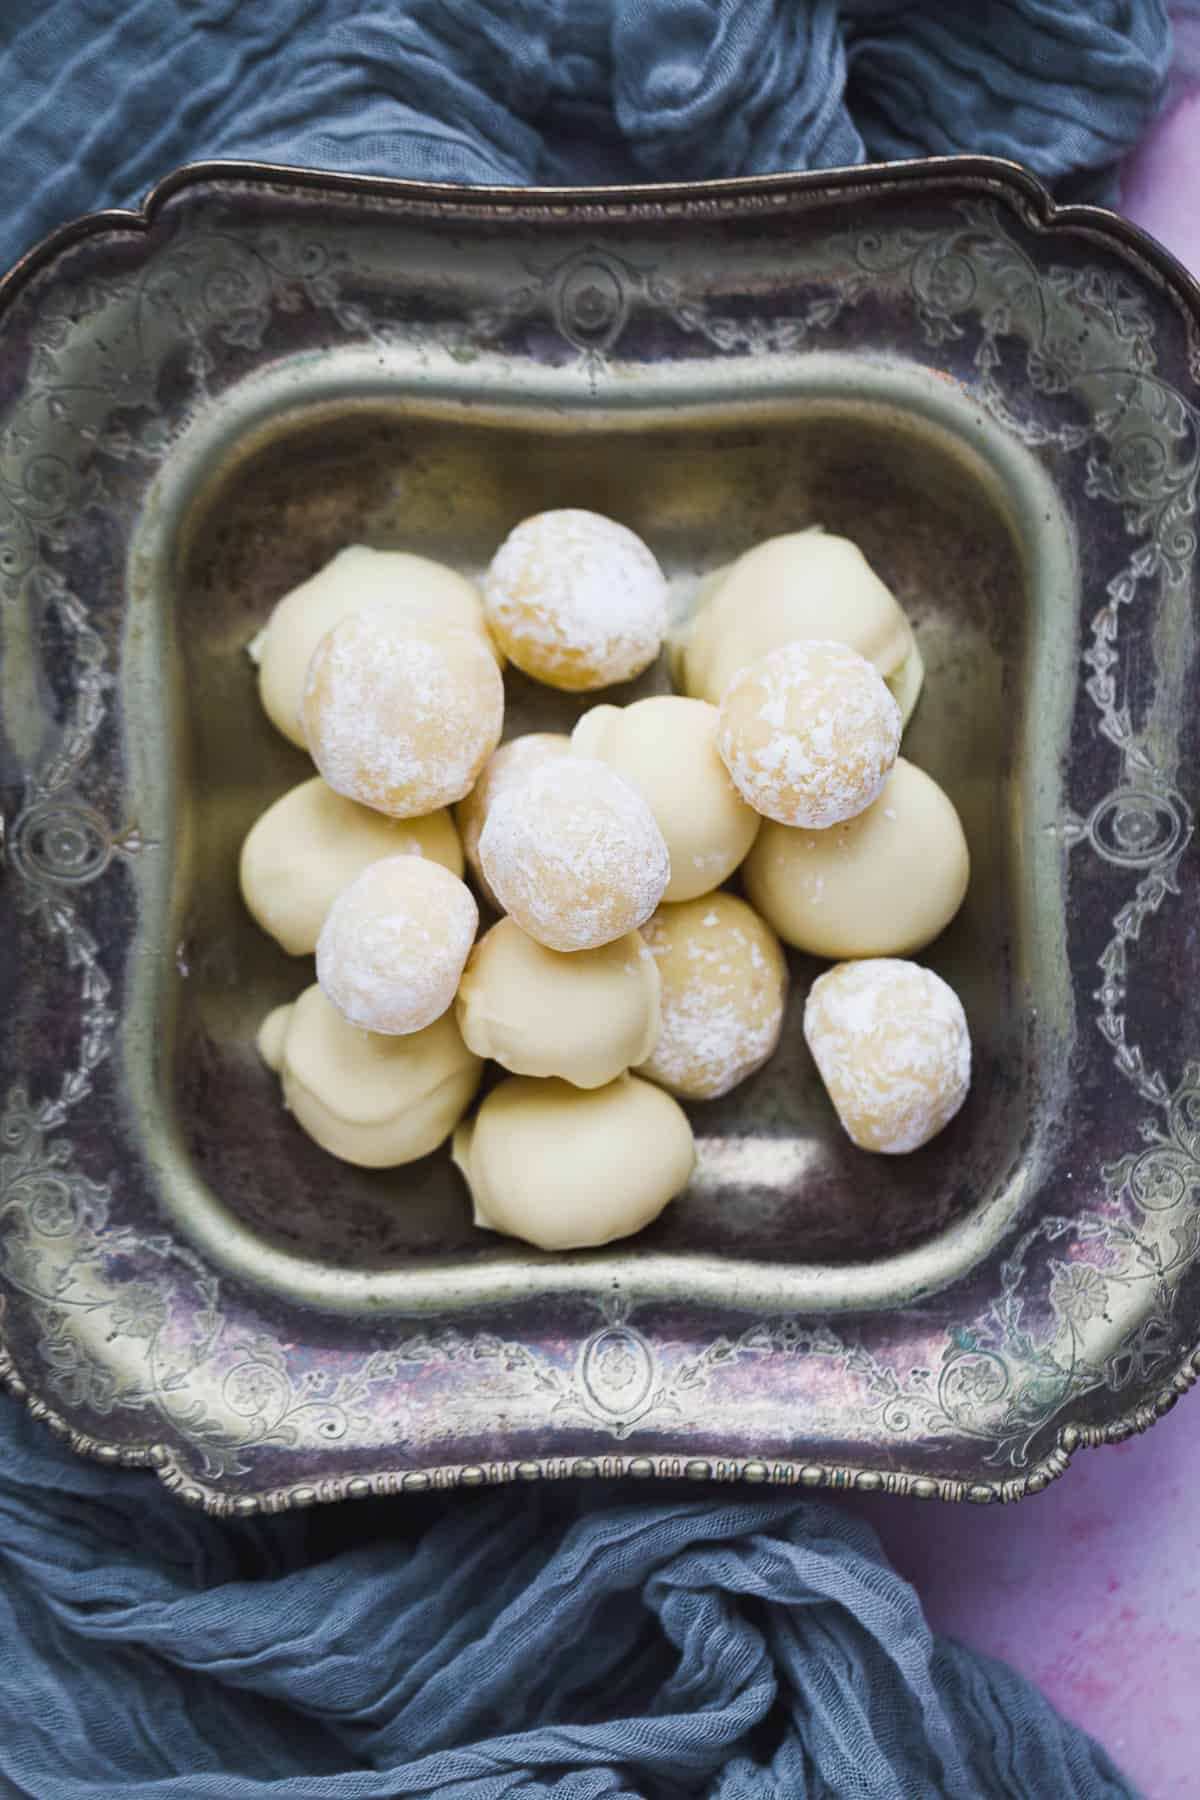 A vintage tray filled with white chocolate and lemon truffles. Half of them have been coated in icing sugar while the other half have been coated in white chocolate.